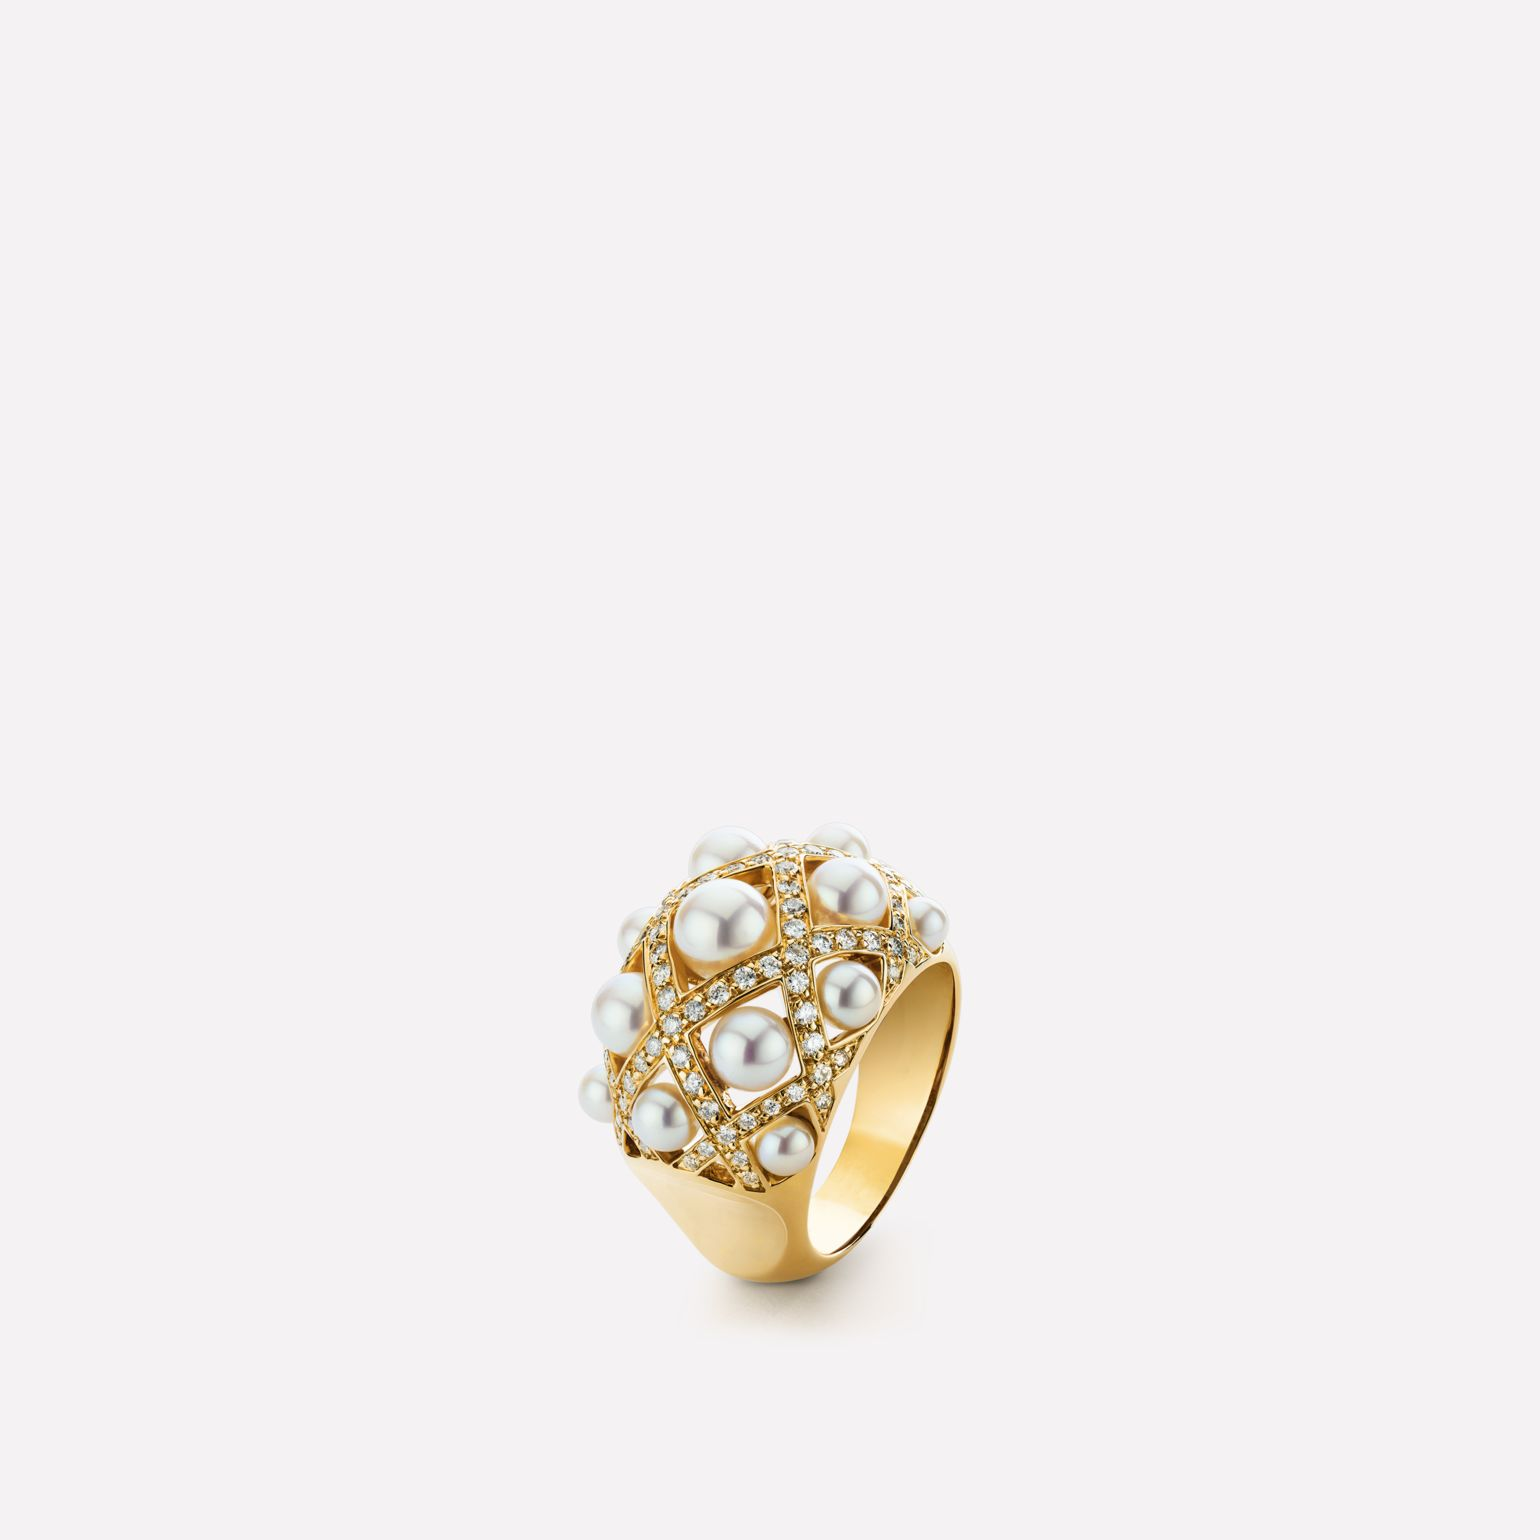 Baroque Ring Baroque quilted ring in 18K yellow gold, cultured pearls and diamonds. Medium version.